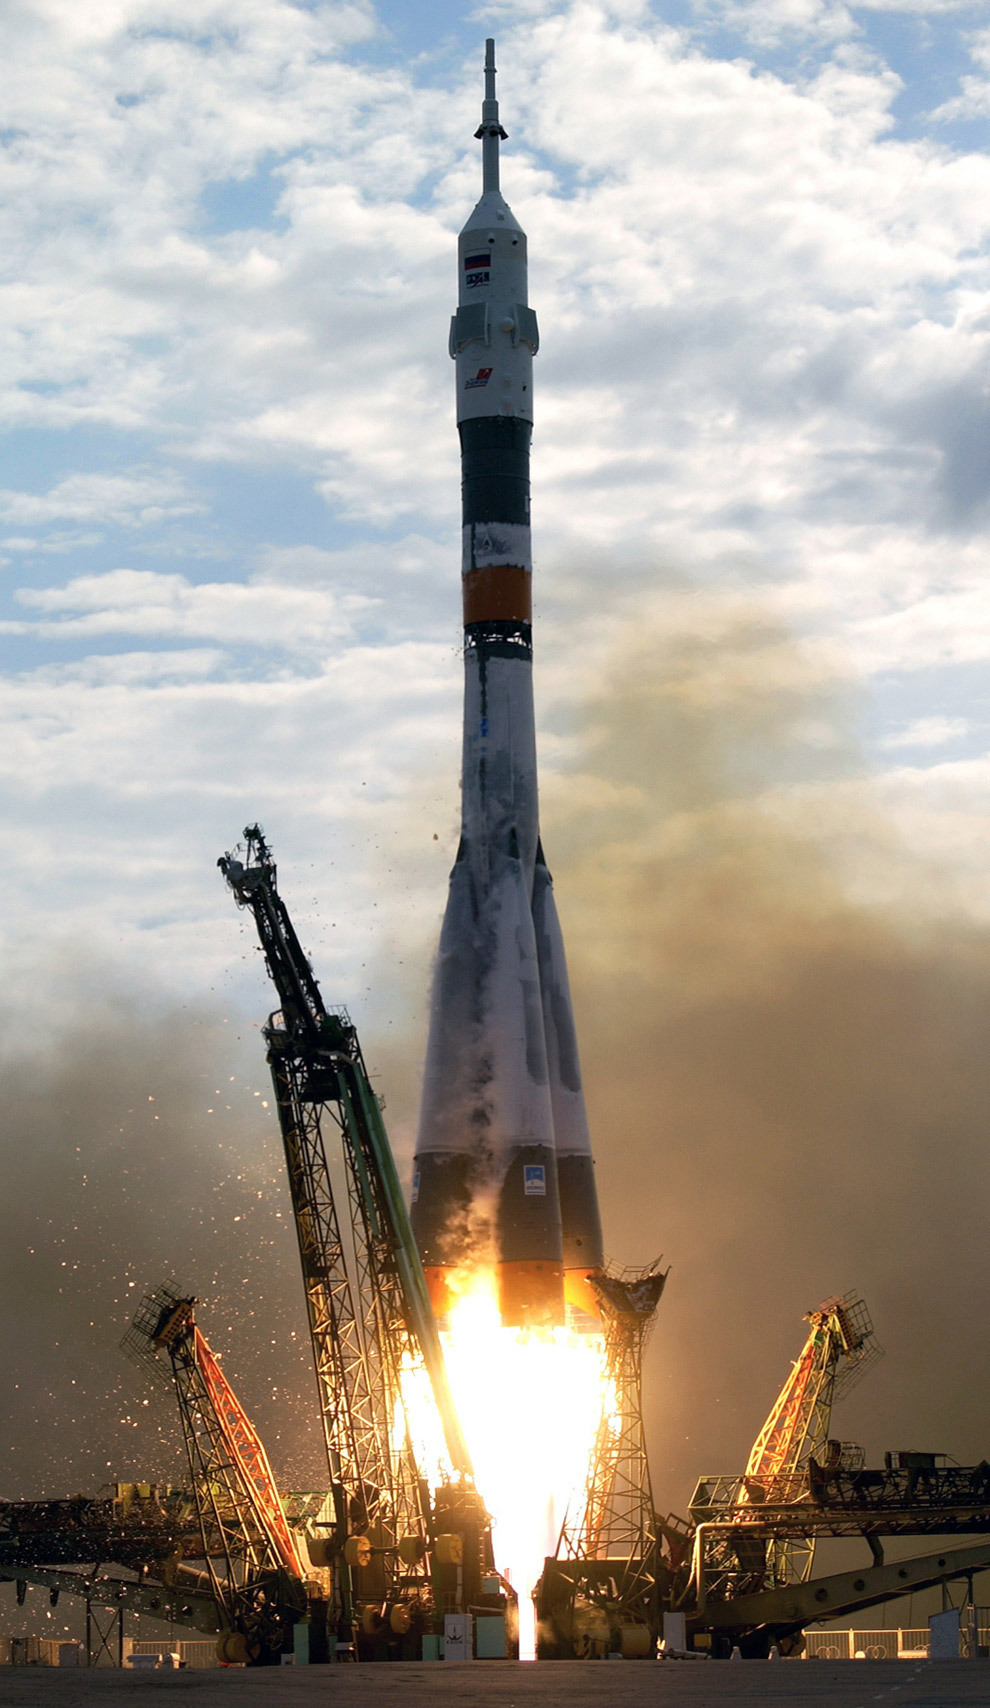 A Soyuz spacecraft lifts off from the Baikonur Cosmodrome, Kazakhstan, at 10:54 p.m. (CDT) on April 26, 2003. Onboard were cosmonaut Yuri I. Malenchenko, Expedition Seven mission commander, and astronaut Edward T. Lu, NASA ISS science officer and flight engineer. Malenchenko represents Rosaviakosmos. (NASA/Scott Andrews)